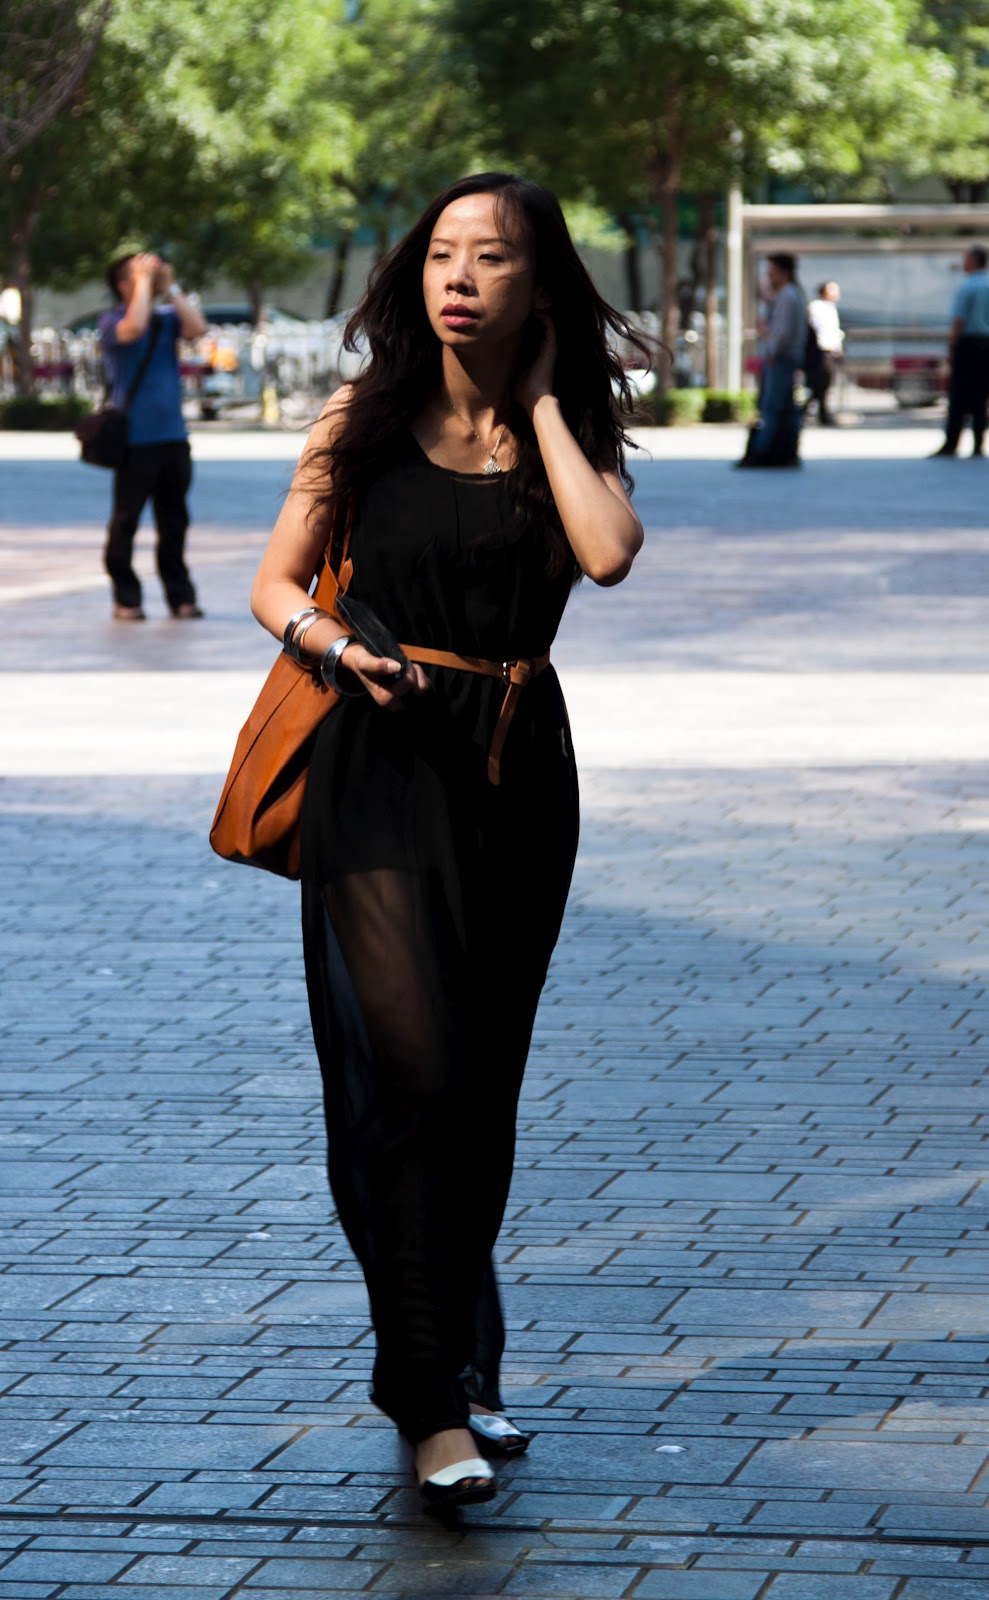 Black dress in summer -  Long Black Sheer Dress Streetstyle